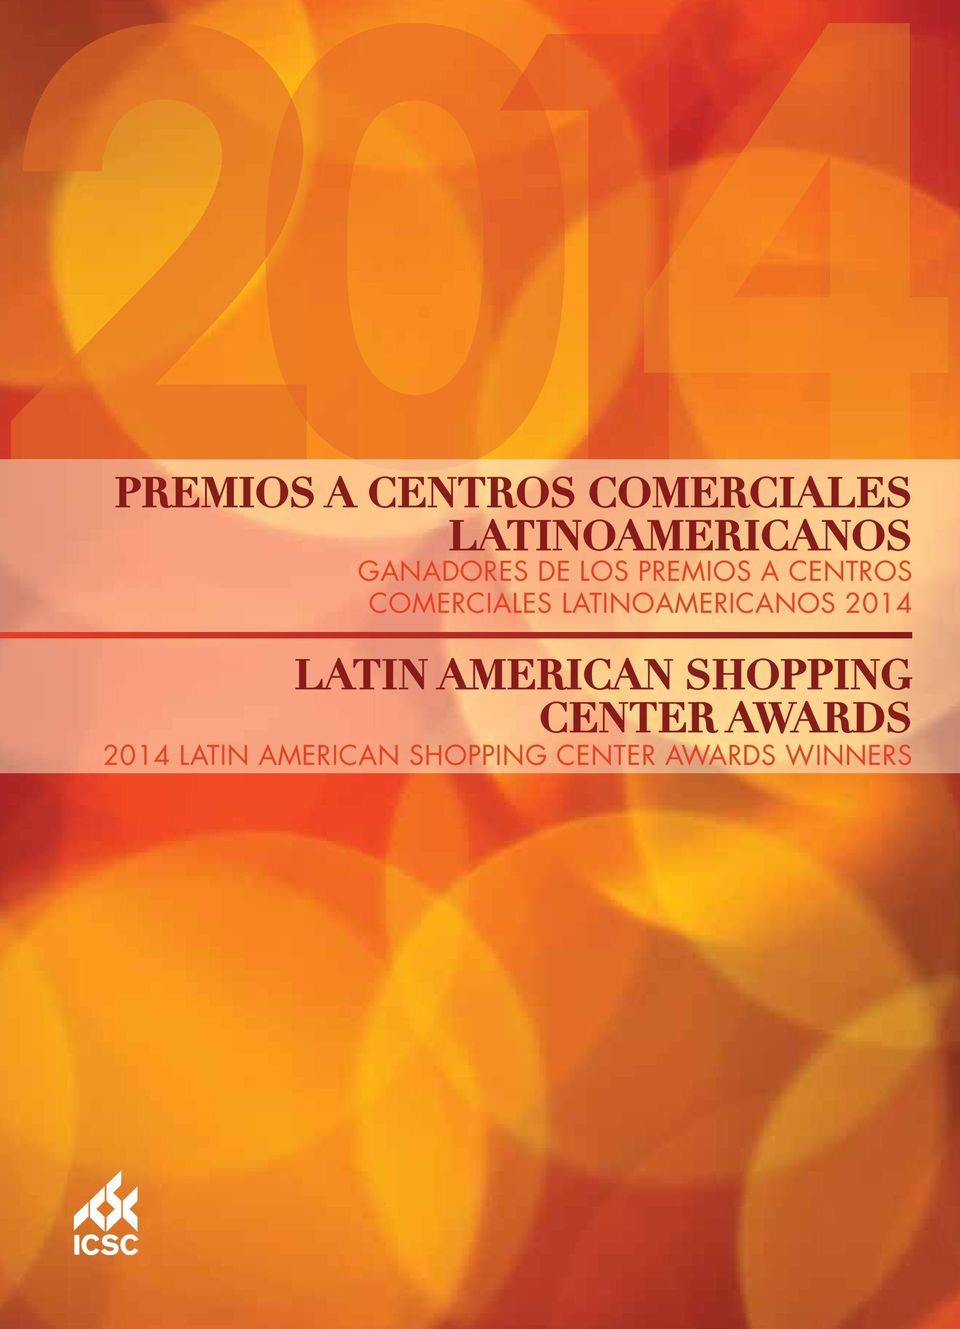 CENTER AWARDS 2014 LATIN AMERICAN SHOPPING CENTER